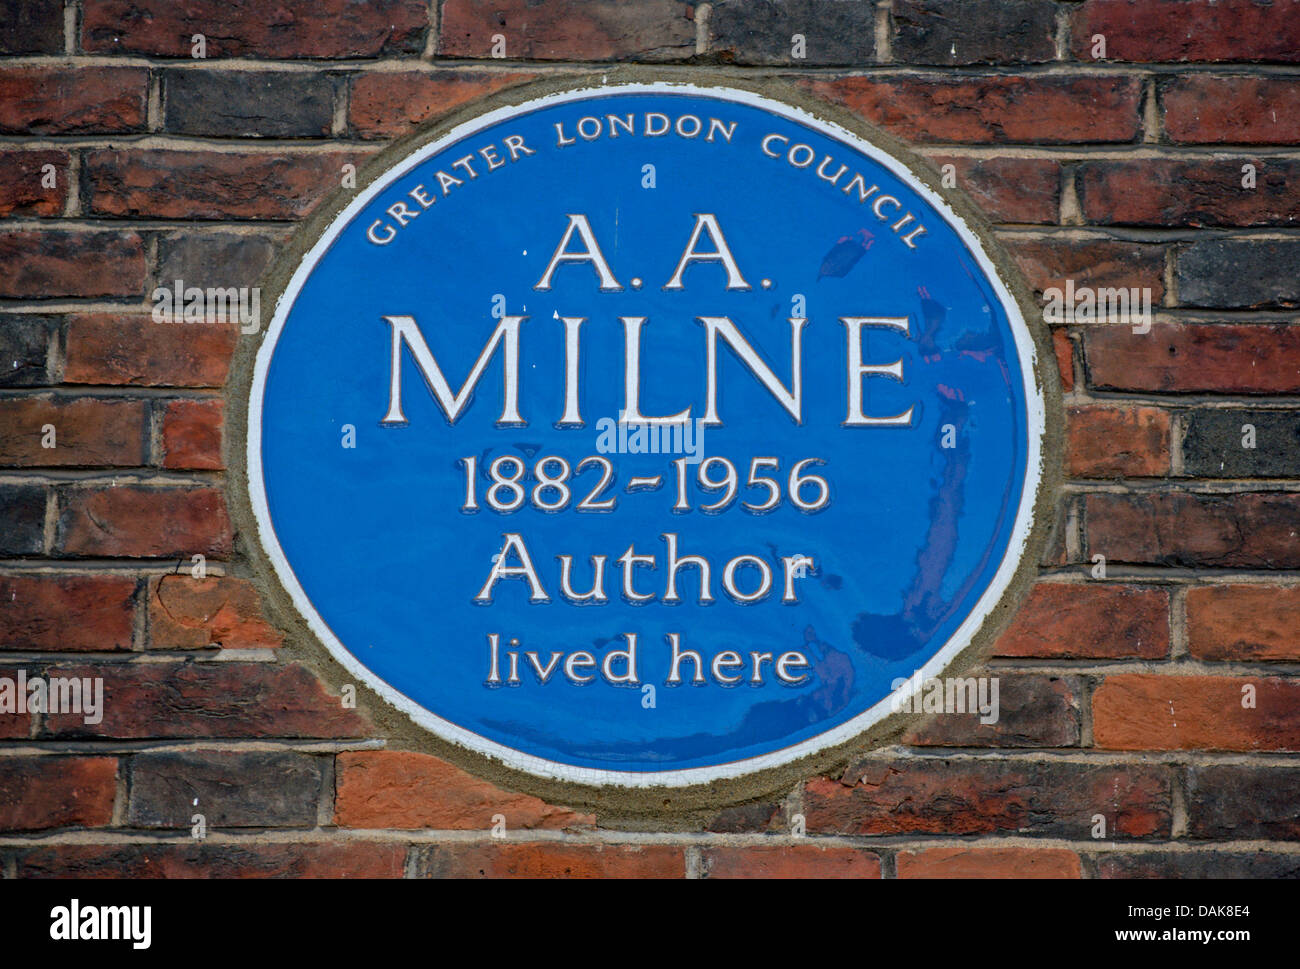 greater london council blue plaque marking a home of auther a.a. milne, chelsea, london, england - Stock Image